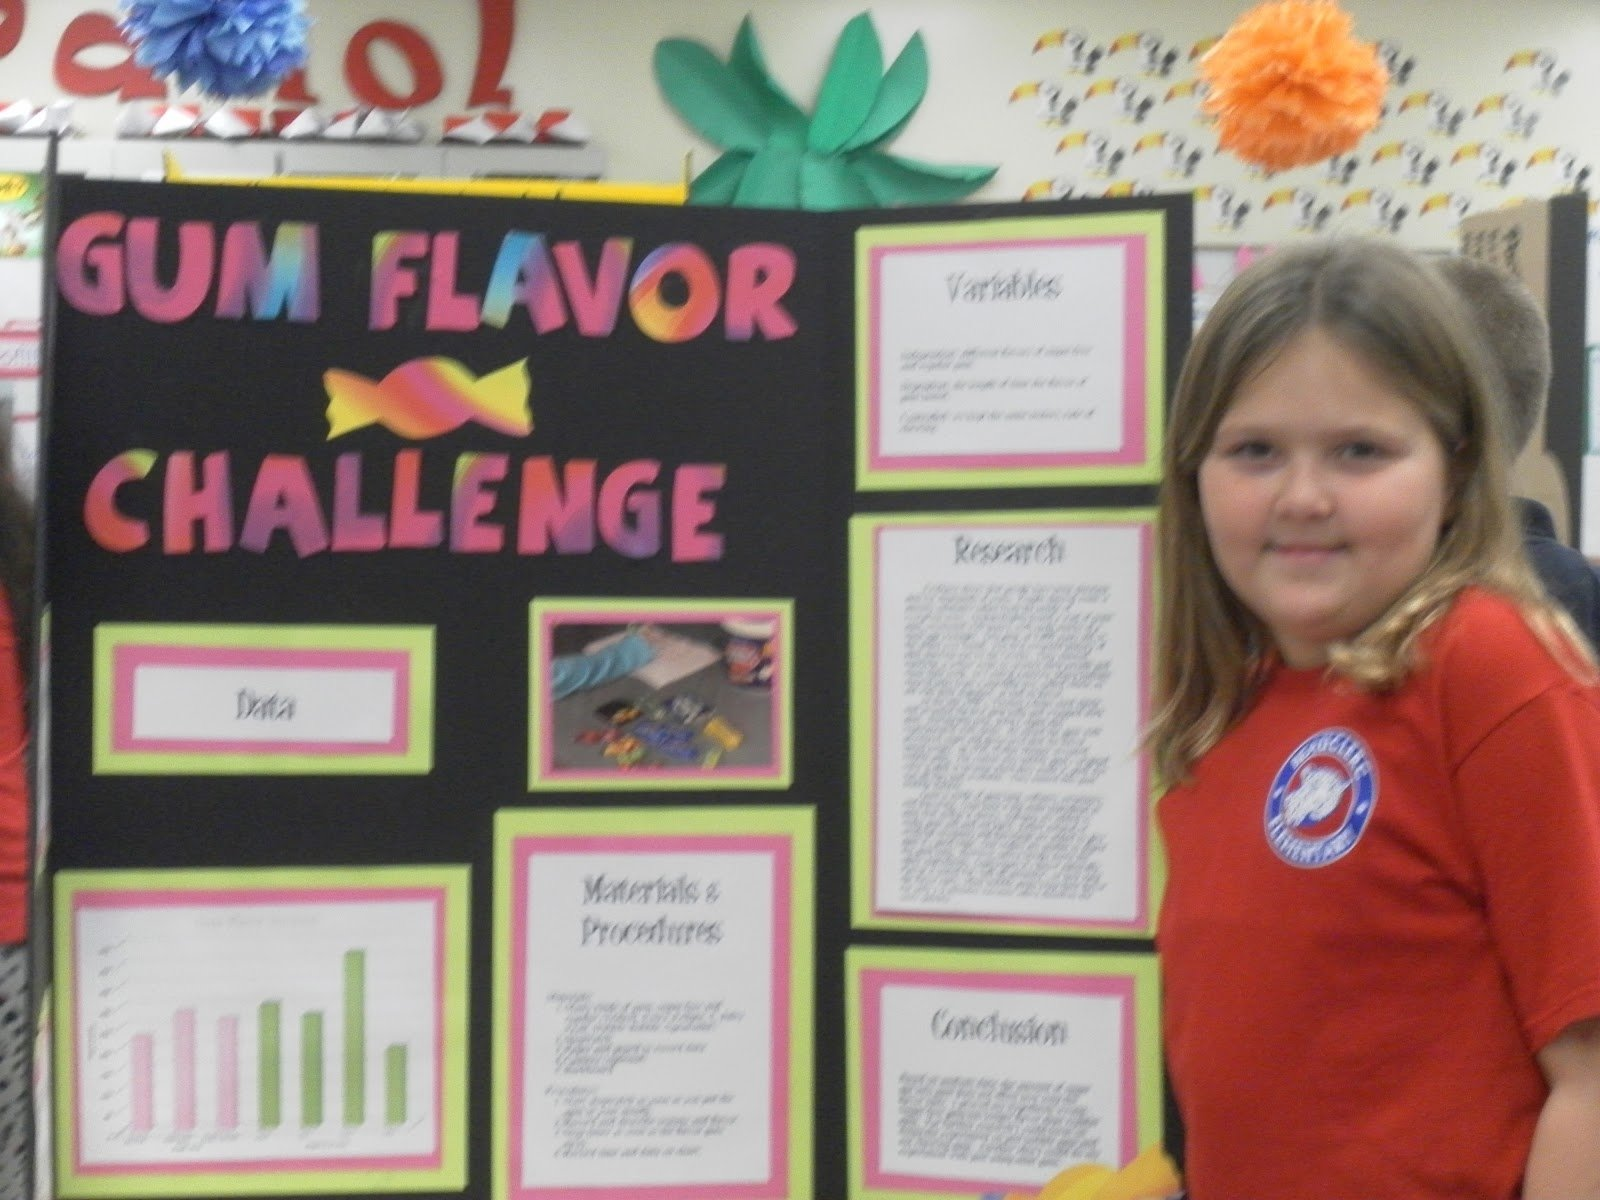 10 Wonderful Science Fair Projects Ideas For 4Th Grade cool science fair projects for 4th graders college paper writing 12 2021